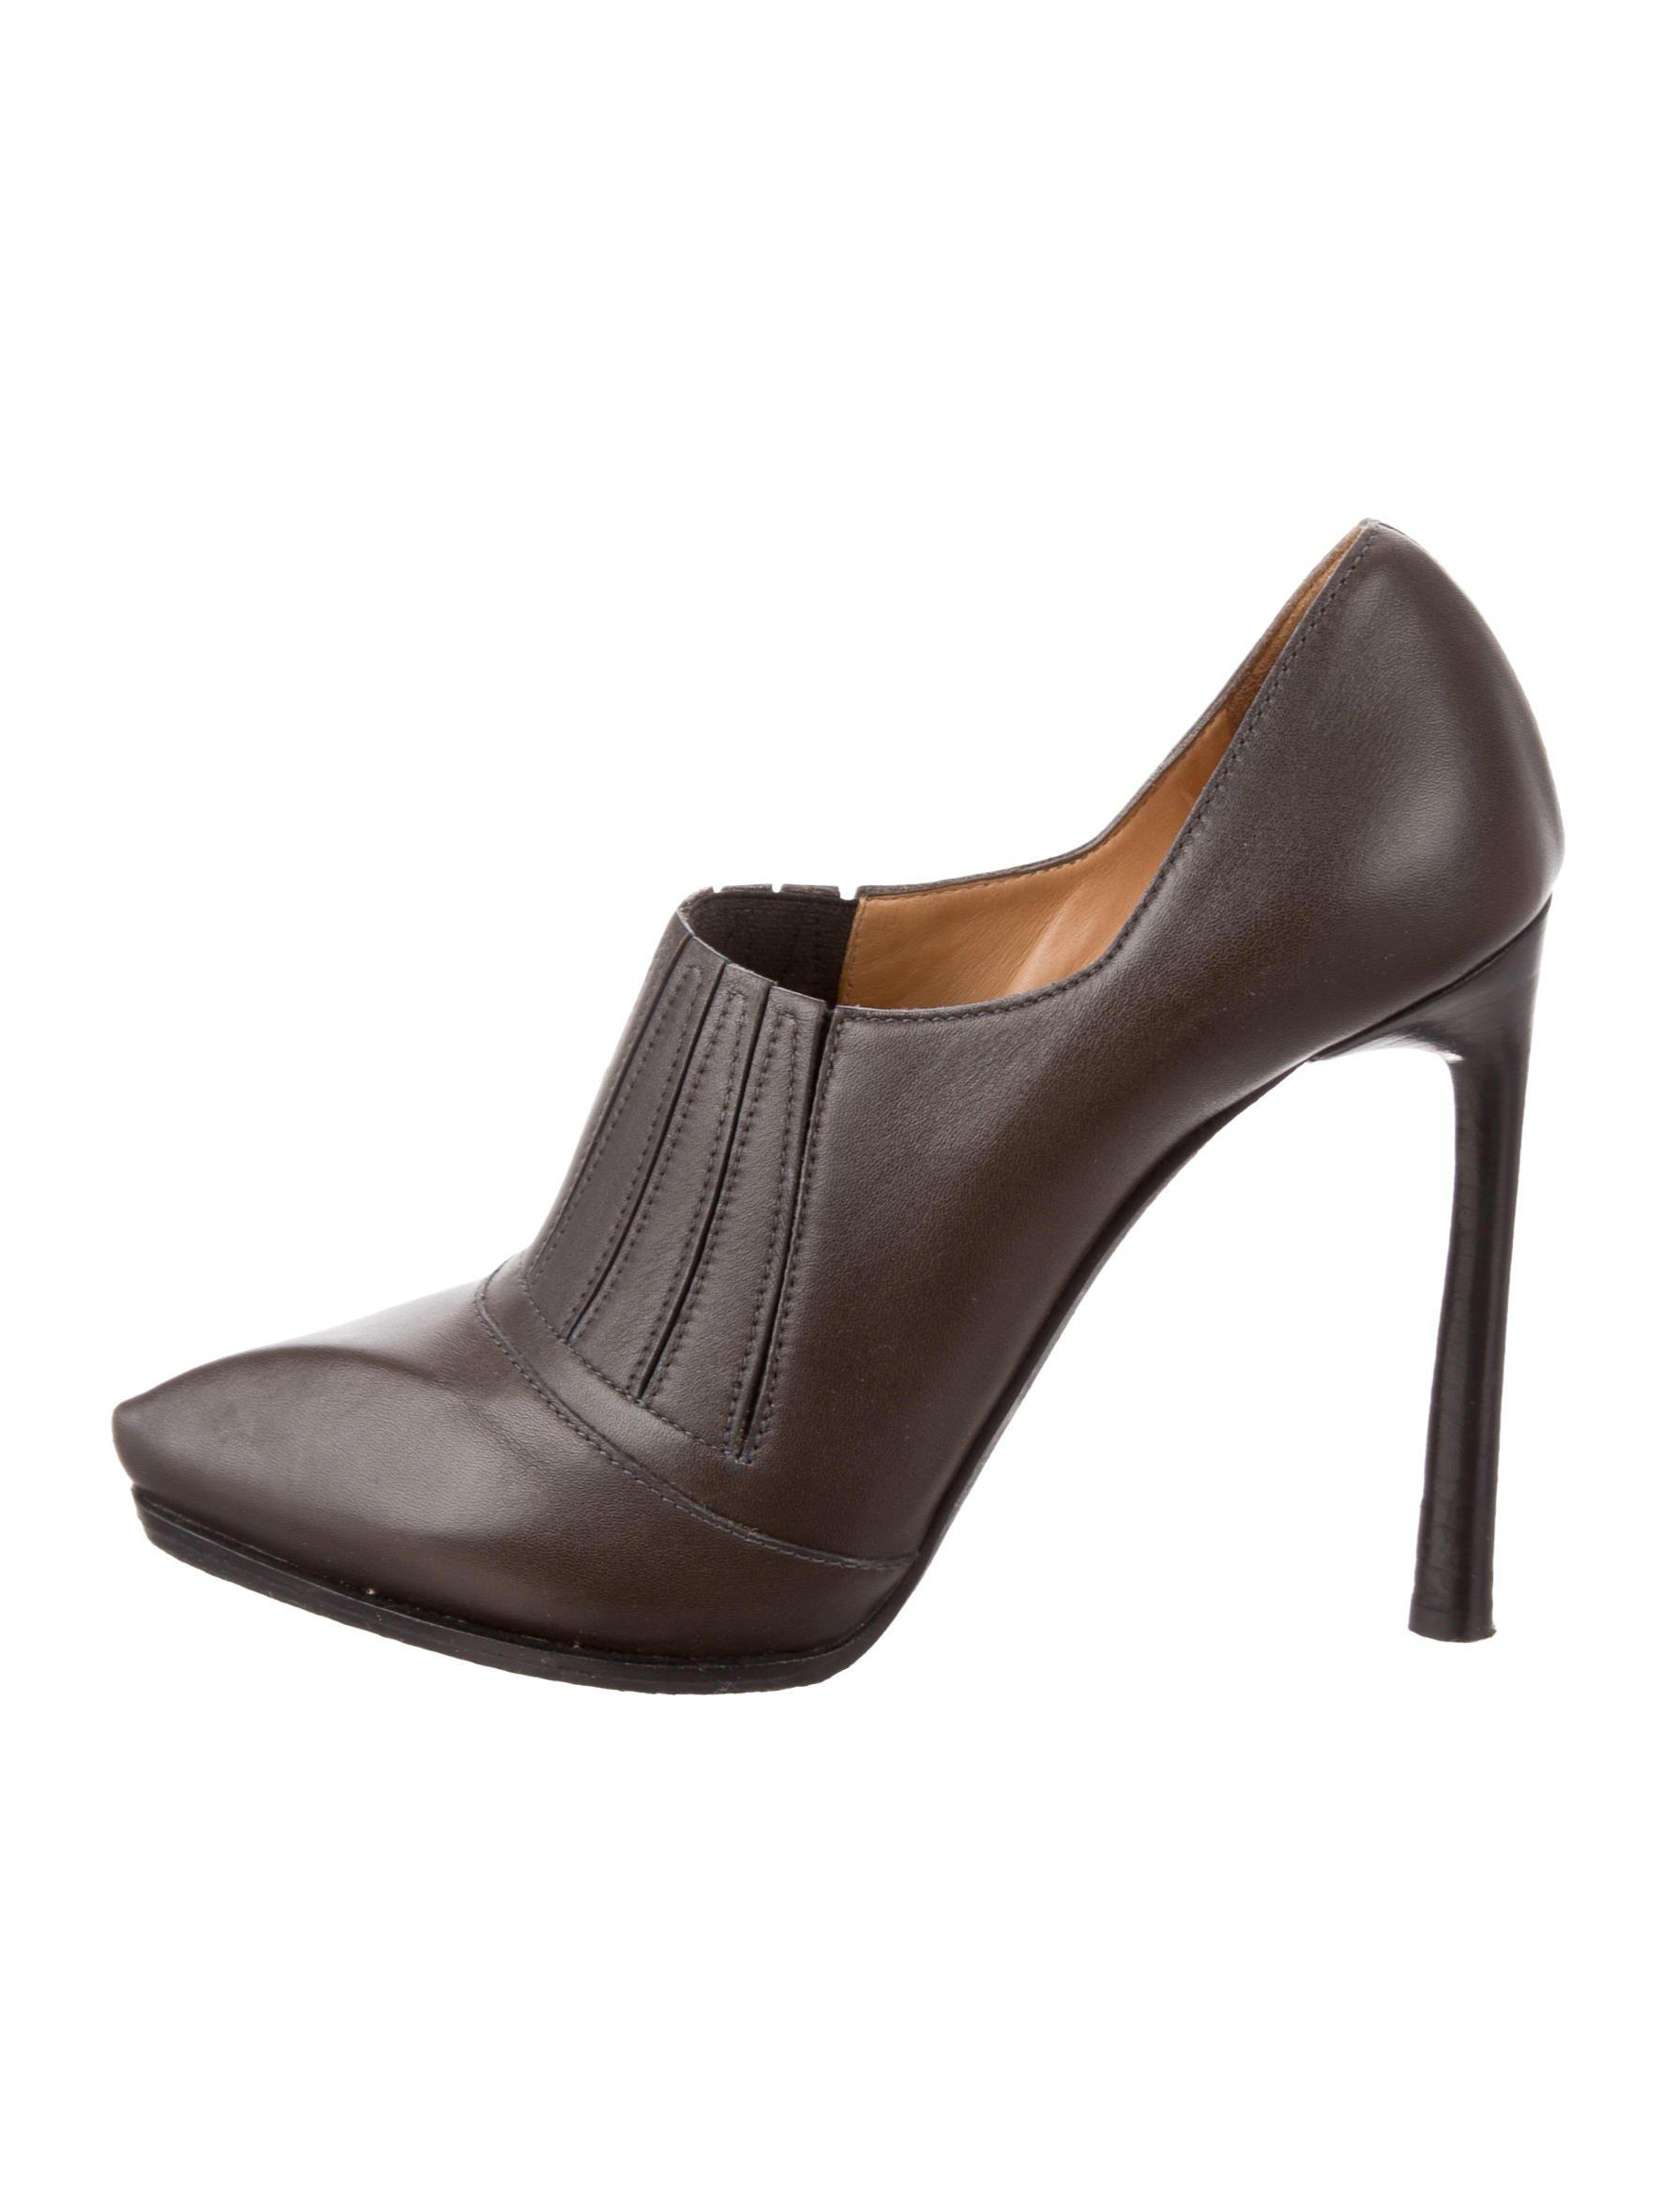 Lanvin Leather Pointed-Toe Booties sast cheap online JsLLe2